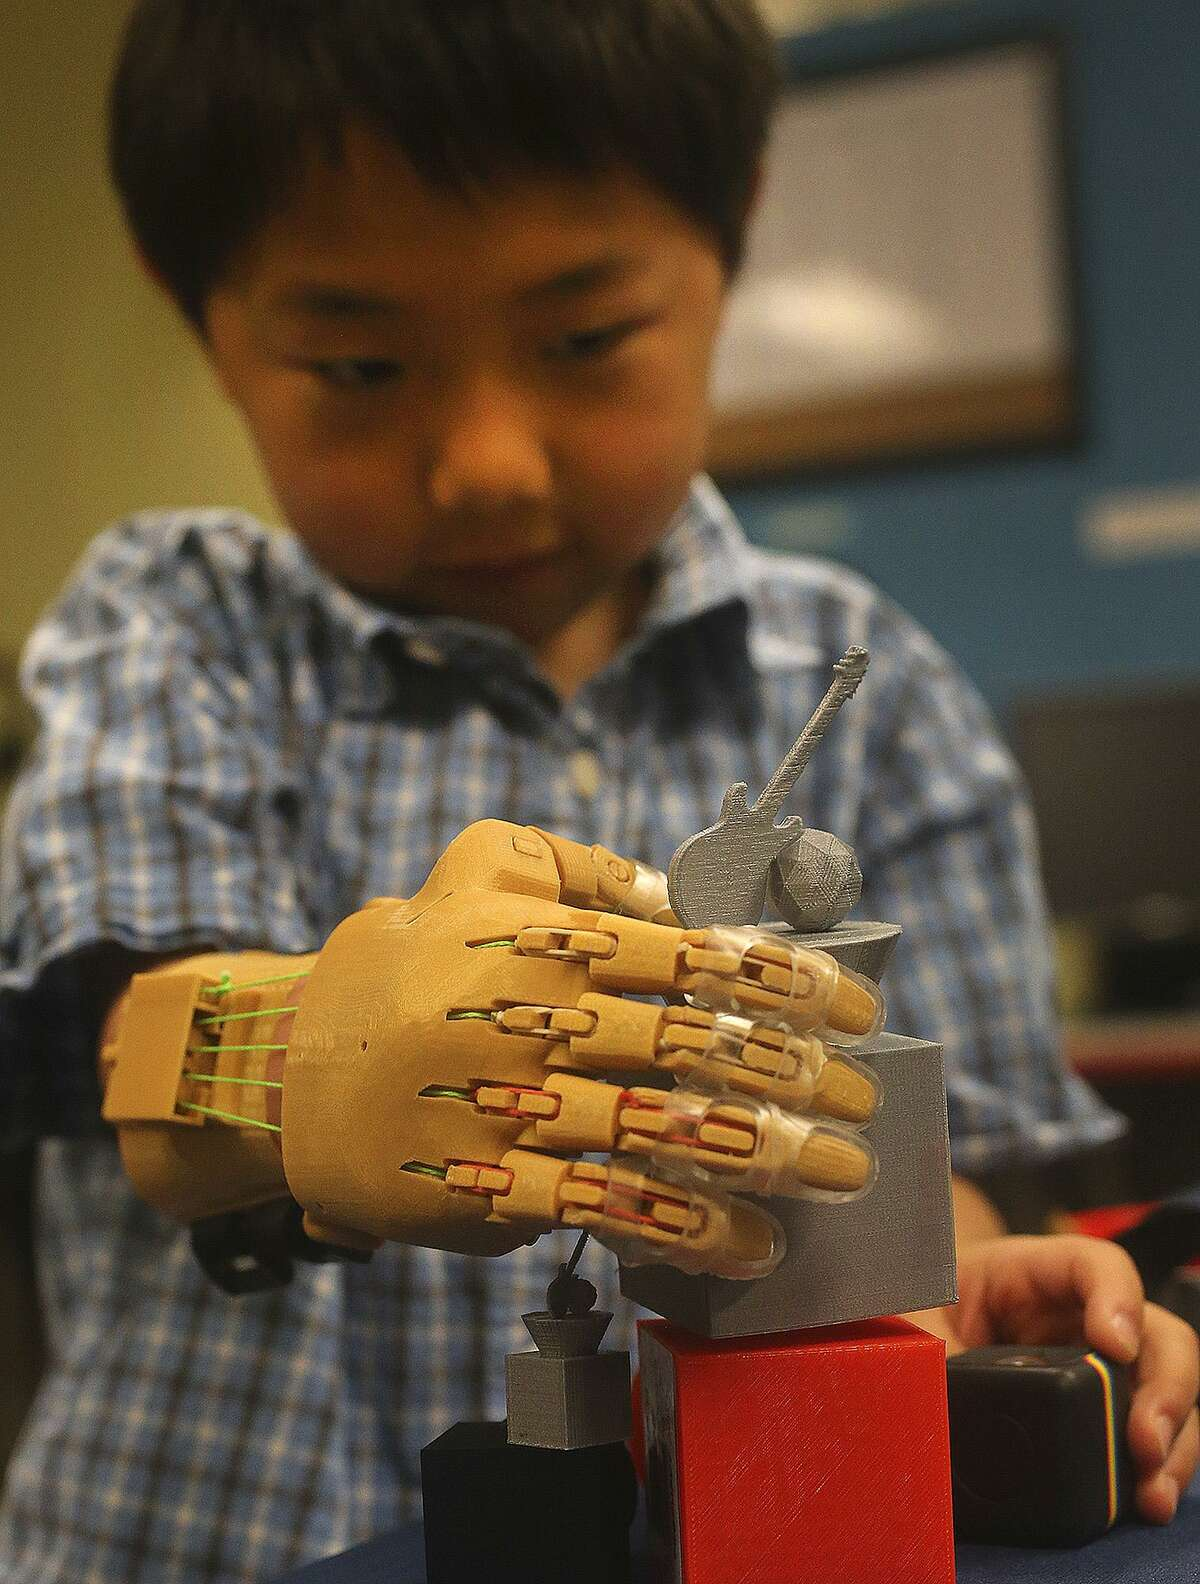 Zack Robbins,6, uses a prosthetic hand Wednesday March 8, 2017 made with a 3D printer by School of Science and Technology student Justin Cantu,16. Robbins was born with underdeveloped right hand and Cantu used technology created by an on-line community called e-NABLE to make the hand for Robbins.